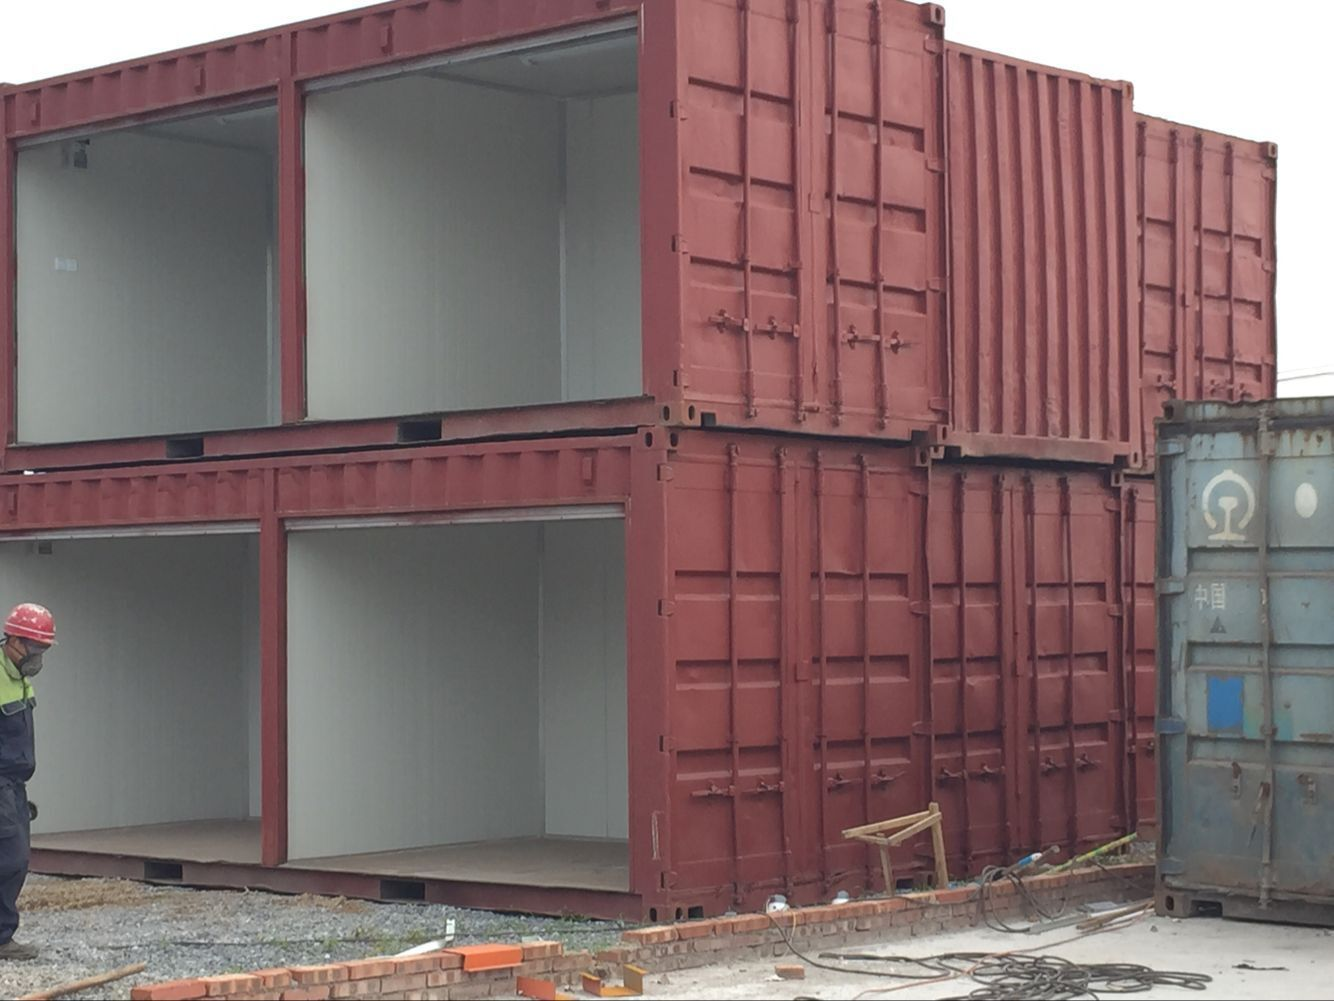 Best Kitchen Gallery: Simple Shipping Container Shop Store Made Of By Used 20 Feet of 20 Foot Shipping Container Cost on rachelxblog.com